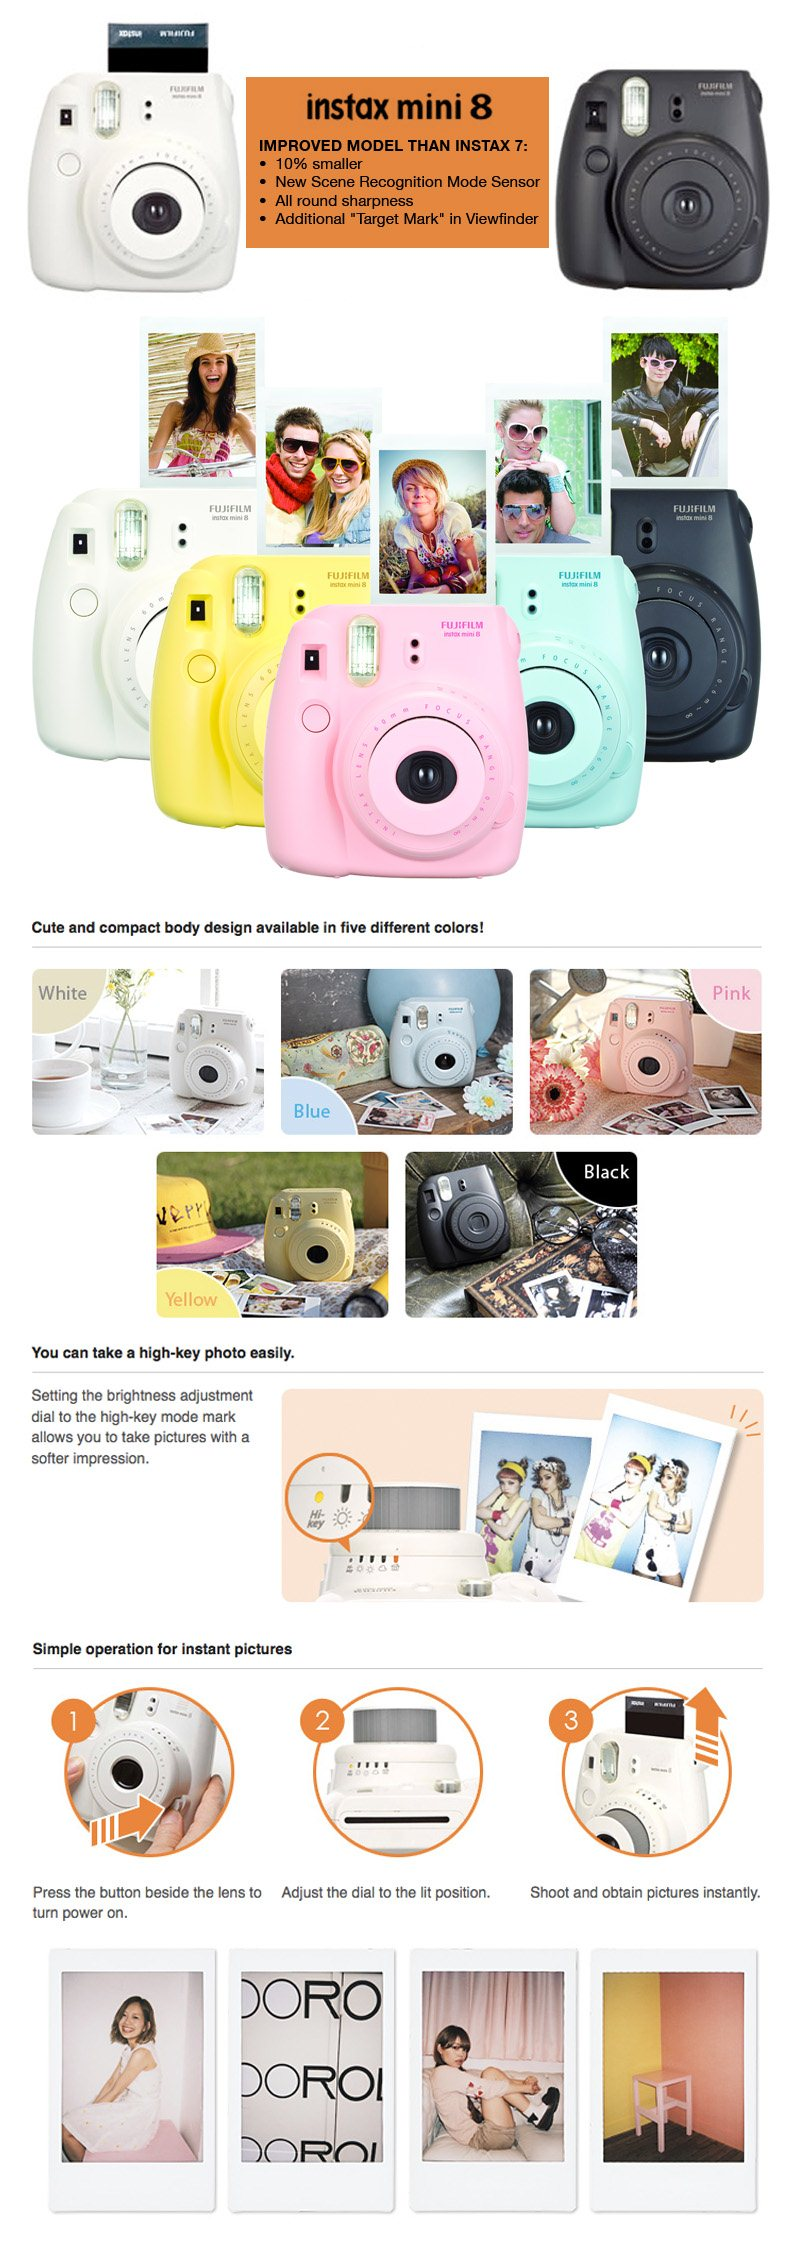 Every Need Want Day Camera 8s Instax Shanghai Girl New Item Limited Edition